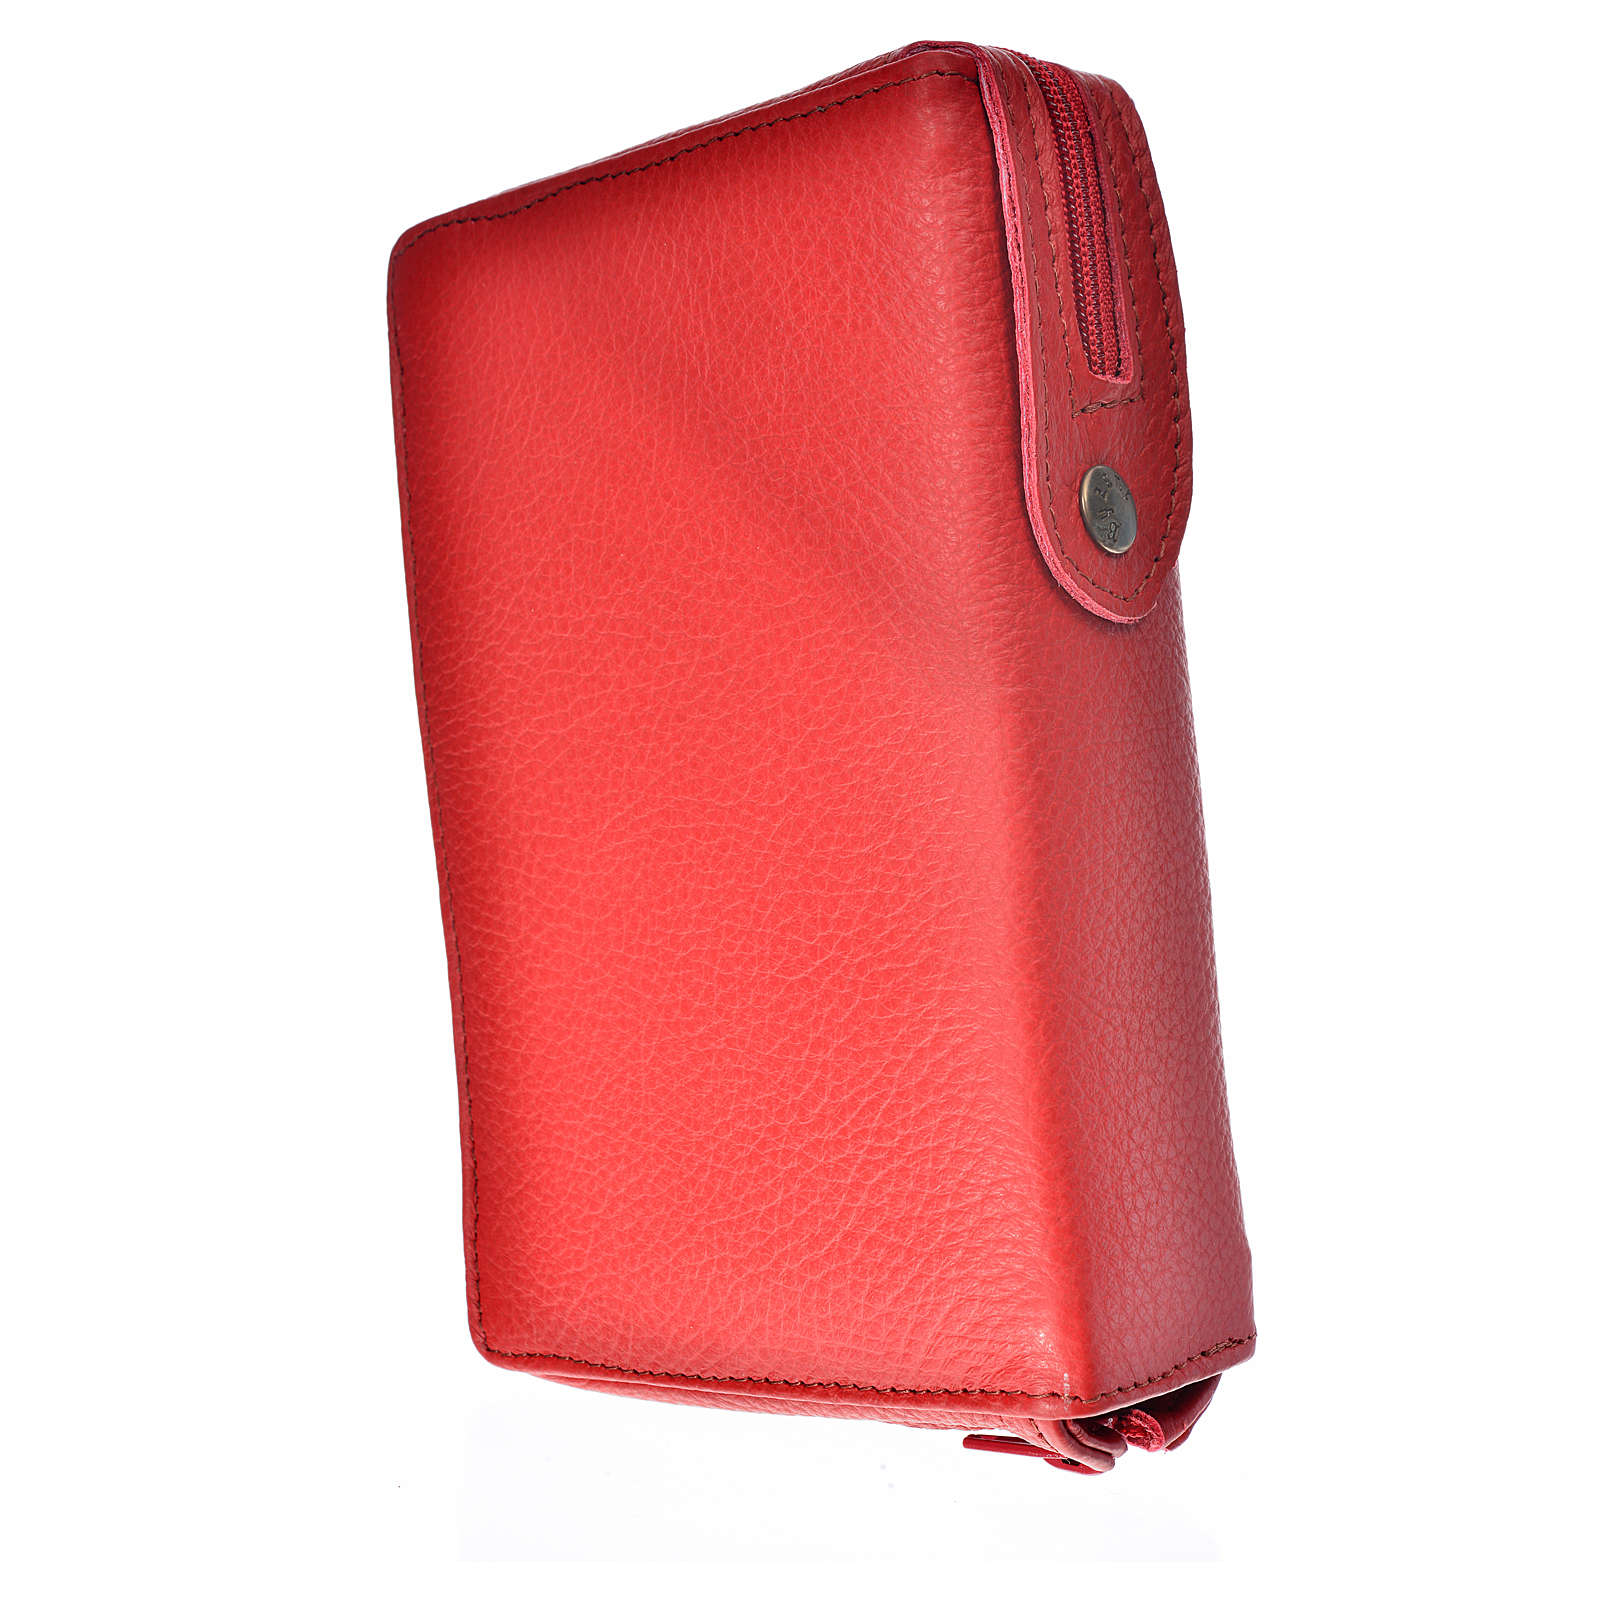 Breviary cover red leather Our Lady of Kiko 4